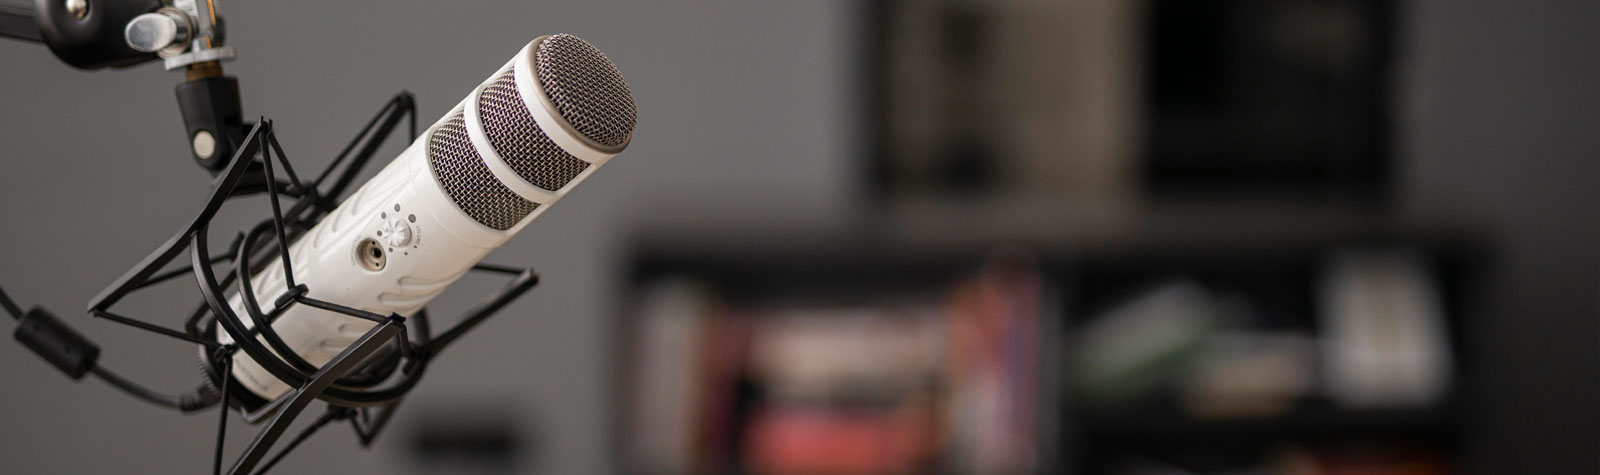 How to Start a Successful Small Business Podcast